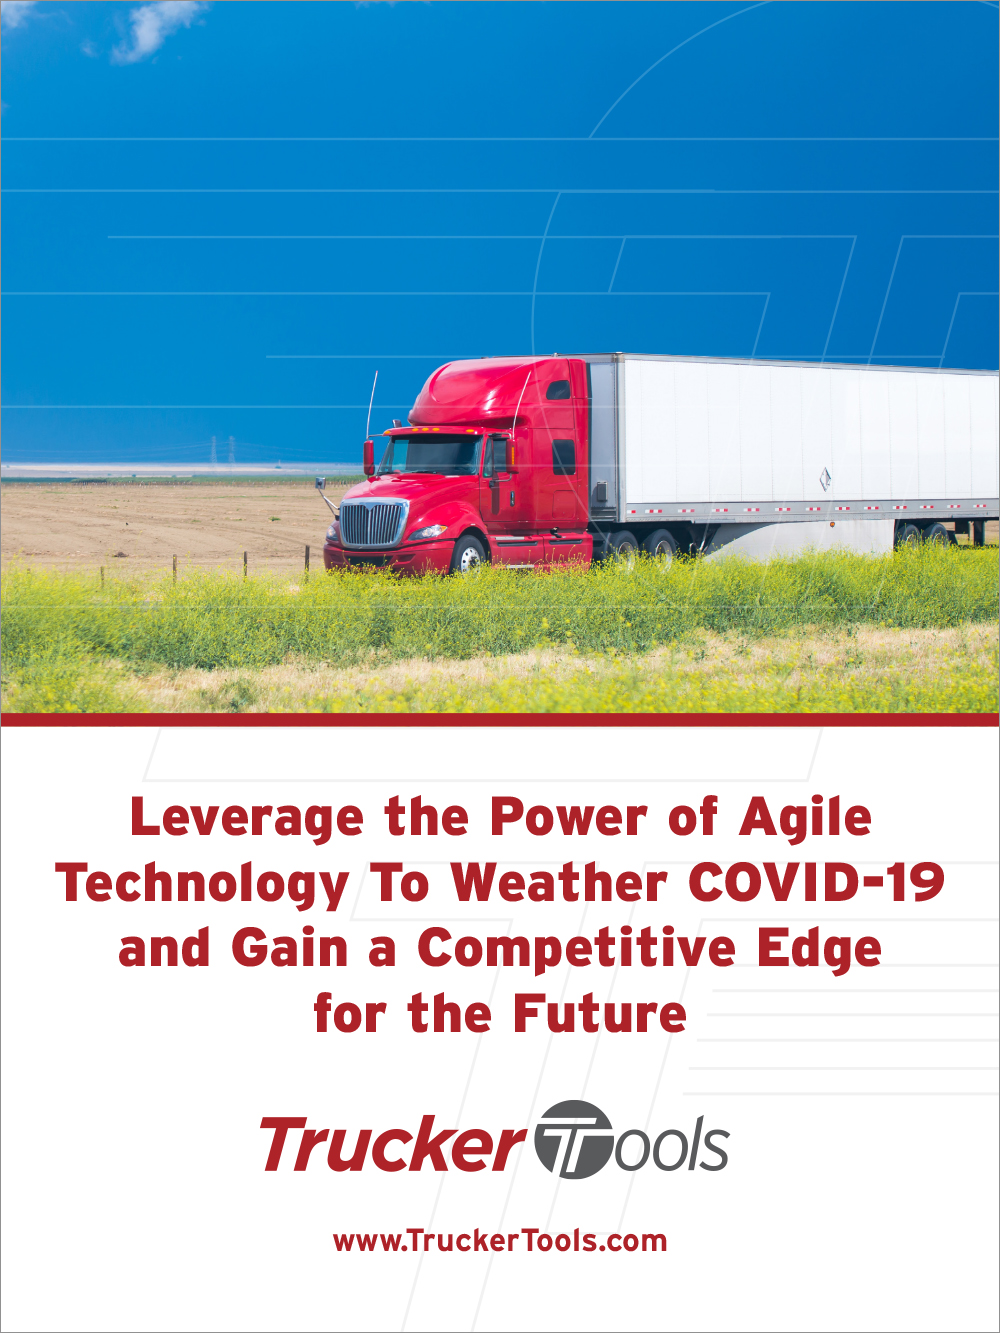 Leverage the Power of Agile Technology To Weather COVID-19 and Gain a Competitive Edge for the Future